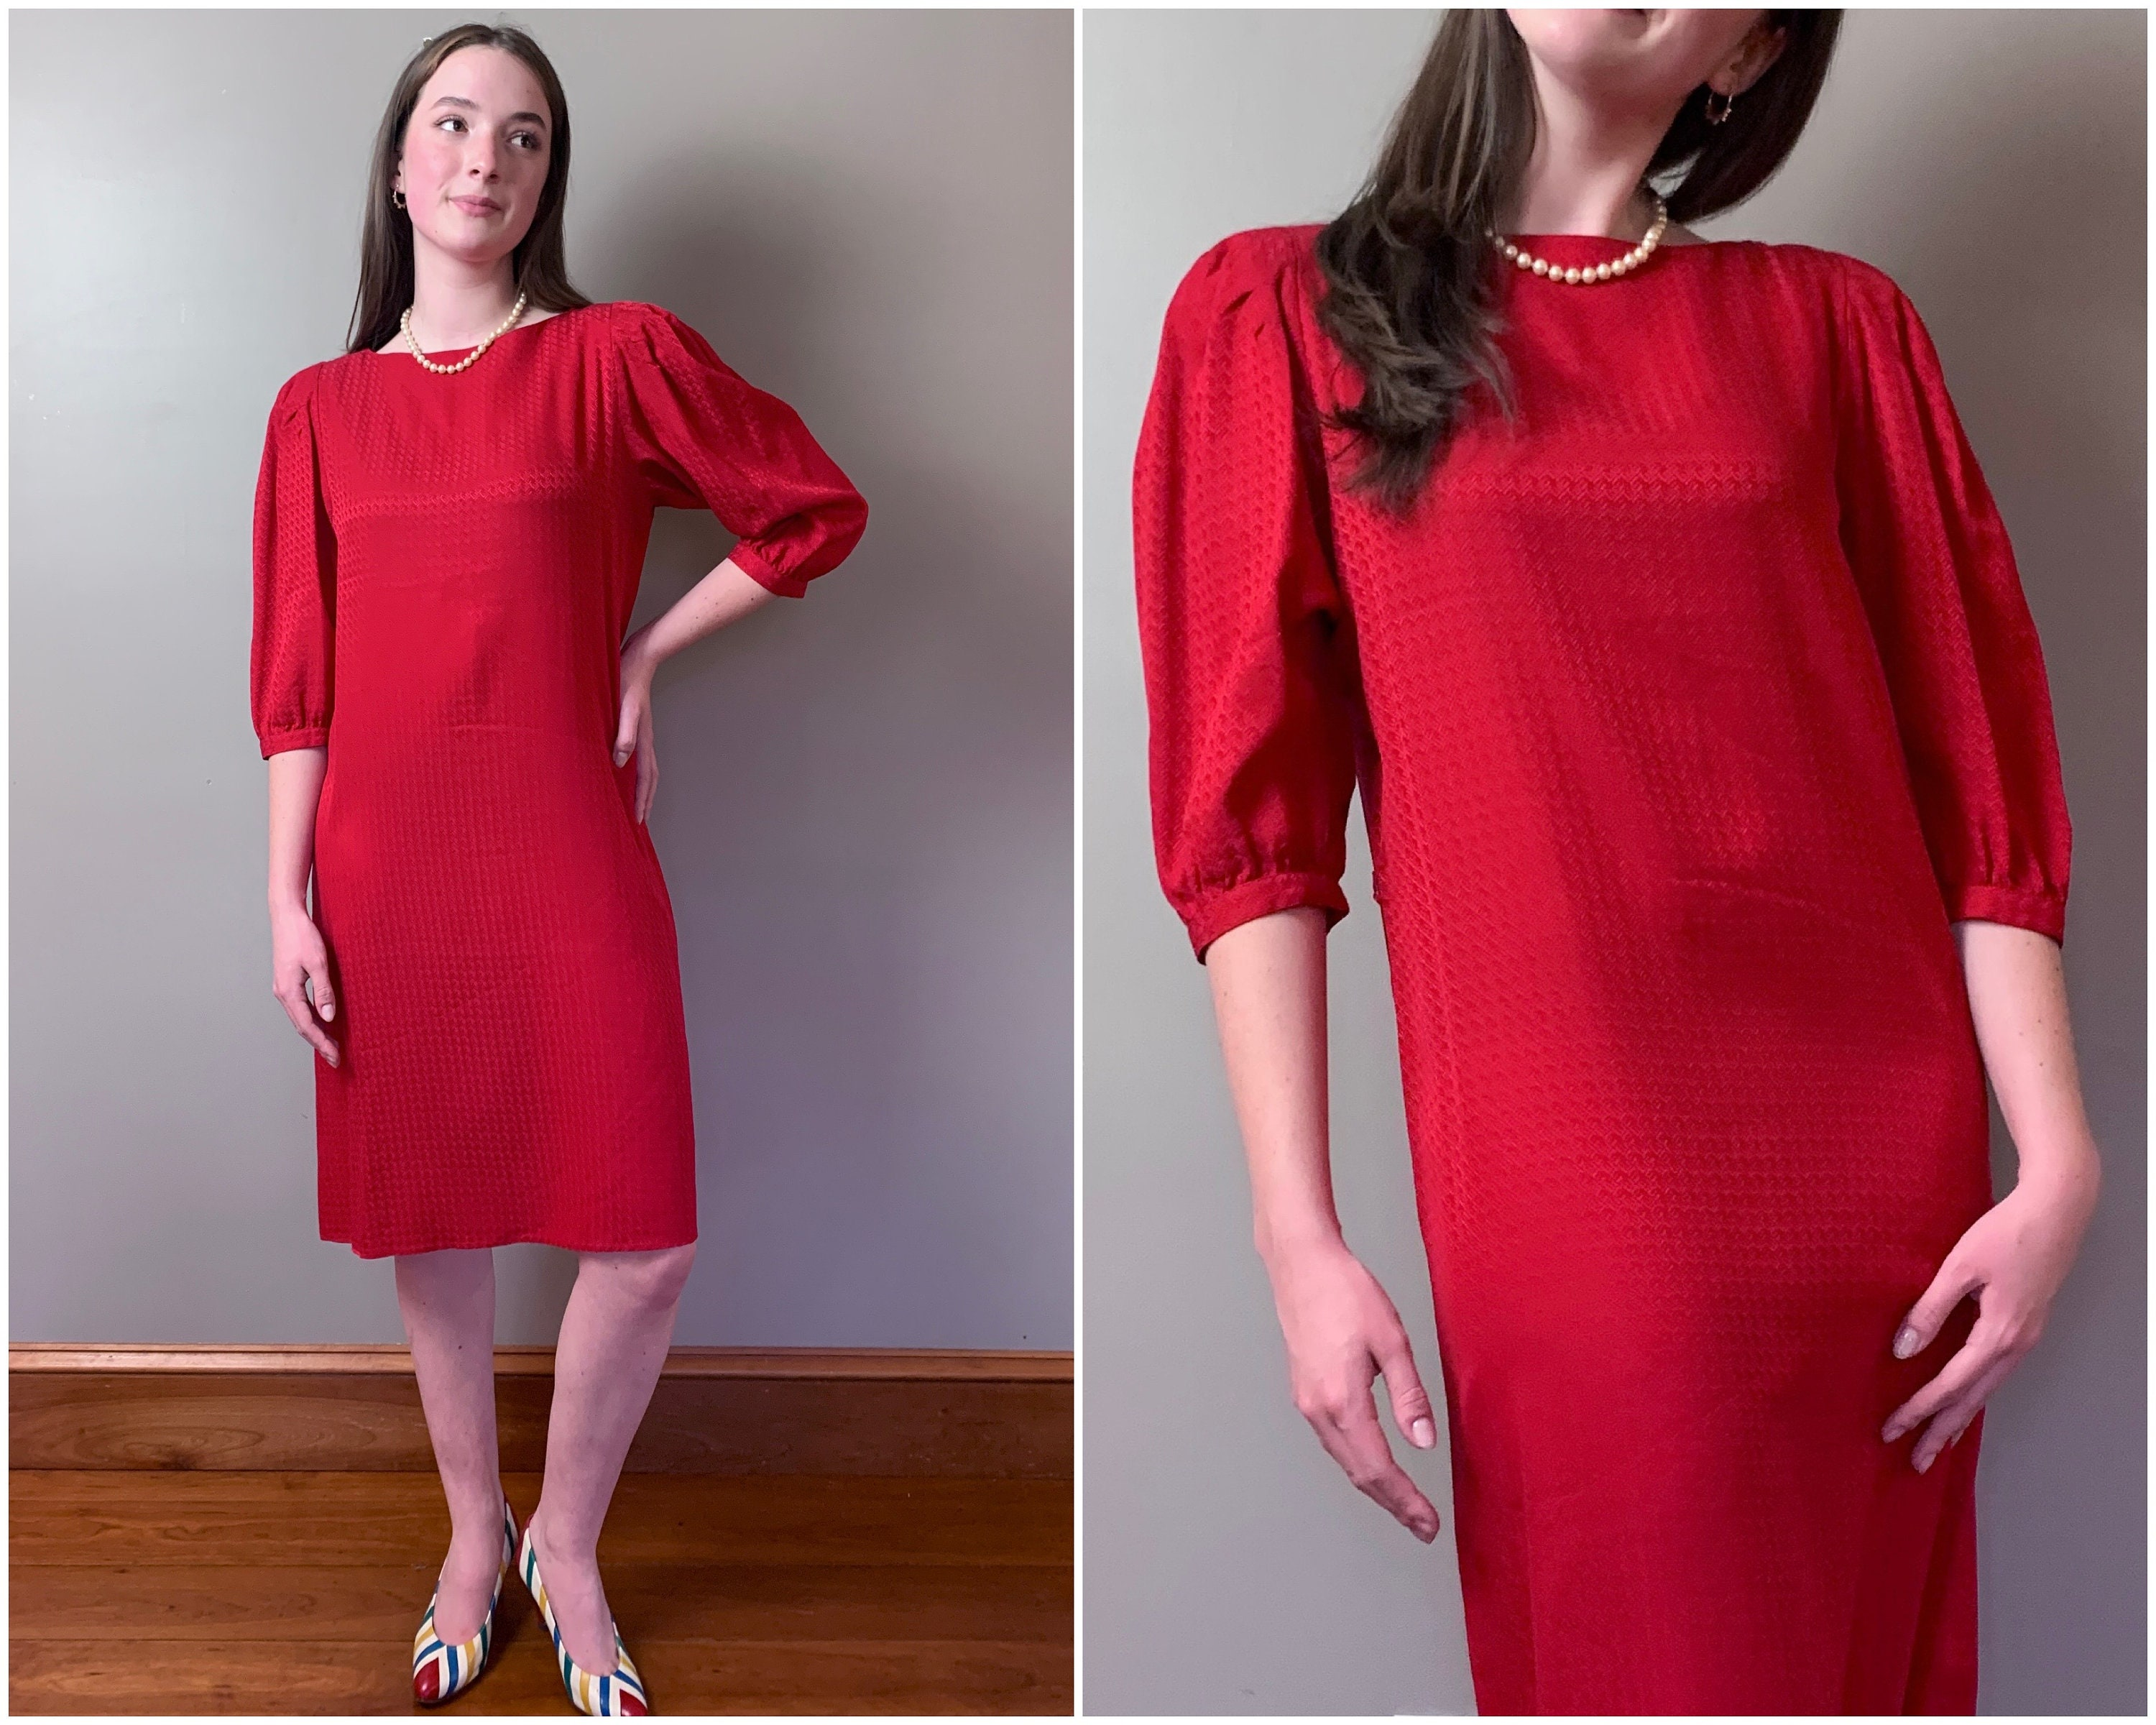 80s Dresses | Casual to Party Dresses Vintage 1980s Red Silk Dress80S Going Places Cherry Satin Shift Dress Summer Spring, Size Xs-S $52.00 AT vintagedancer.com